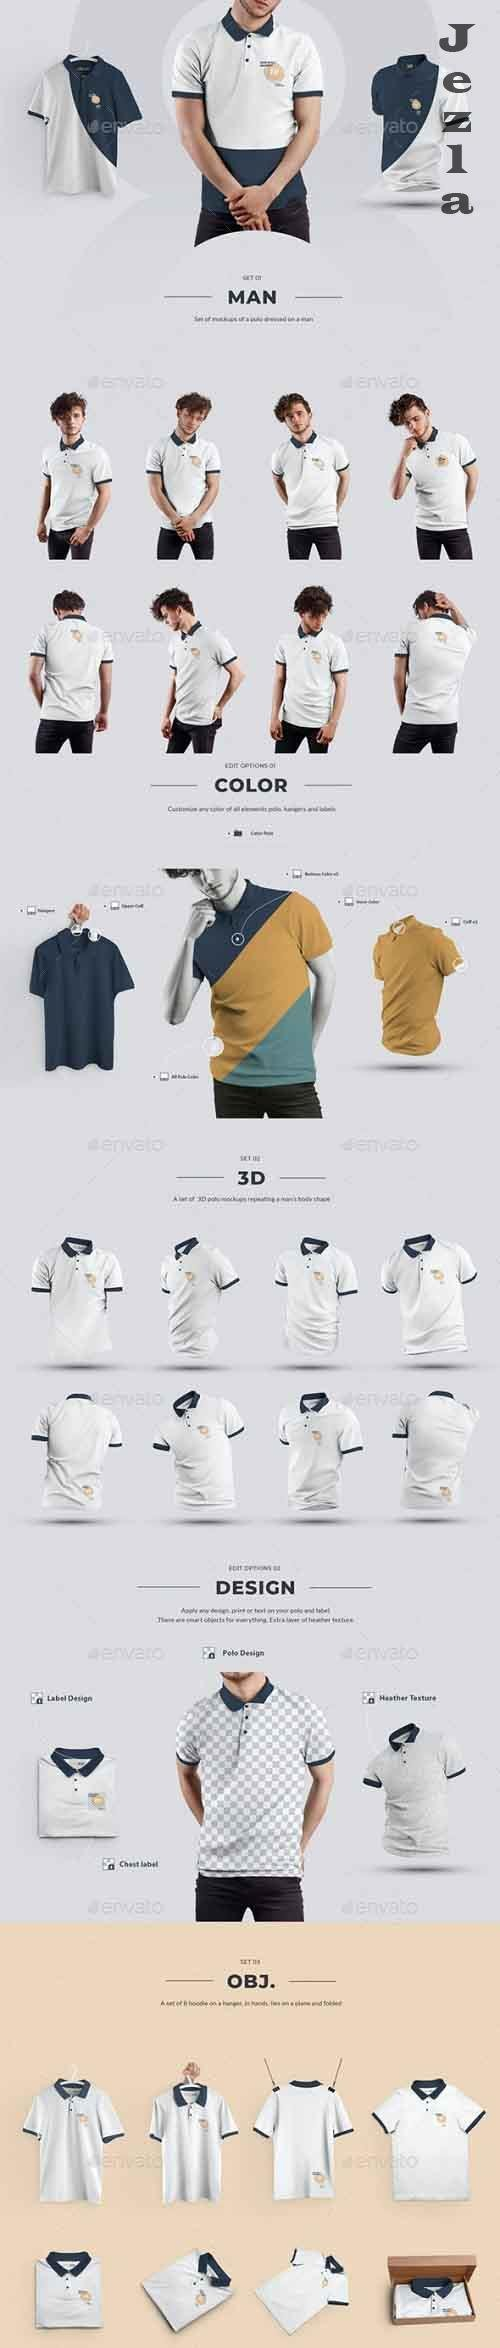 GraphicRiver - 24 Polo Men Mockup - Man/3D/Objects ( Collection #4 ) 29362775